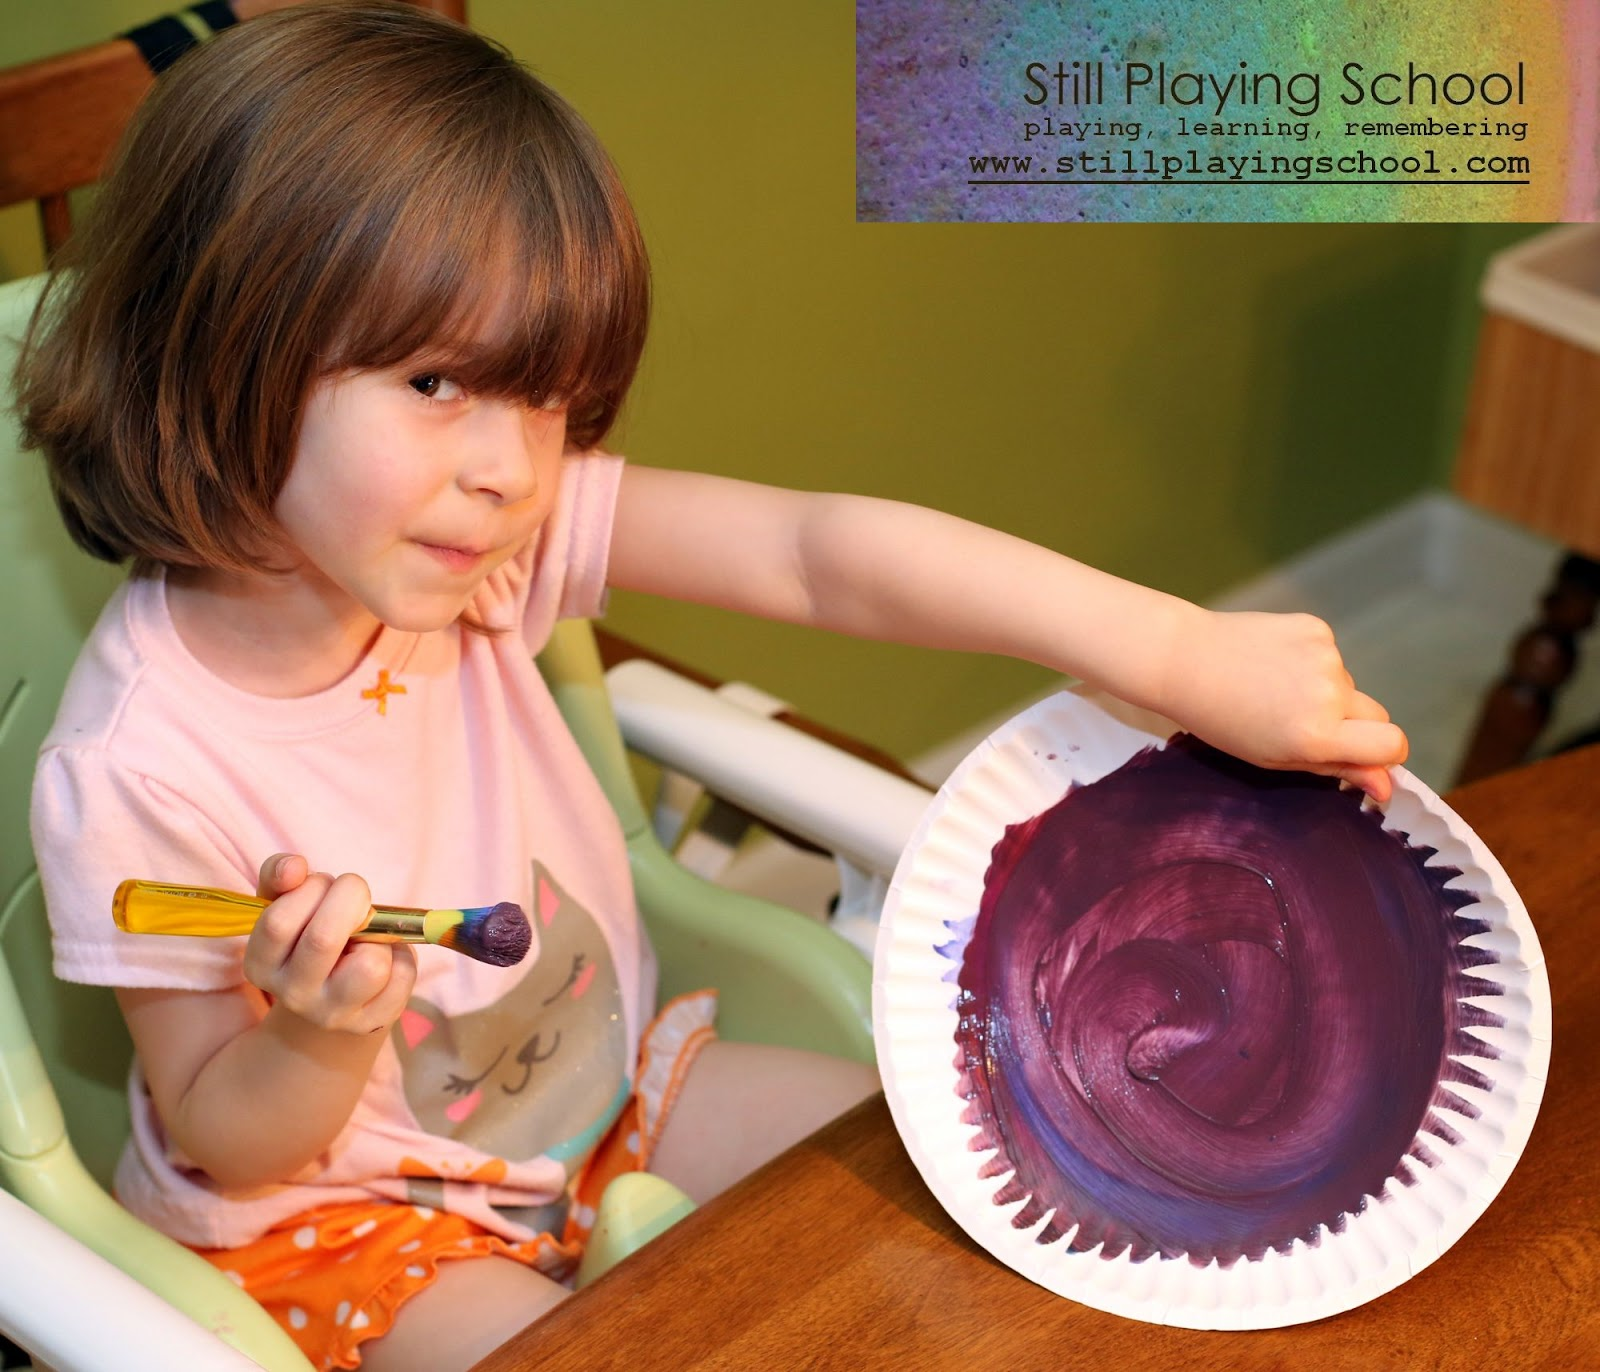 Splat studio preschool summer camp still playing school - Purple and red go together ...